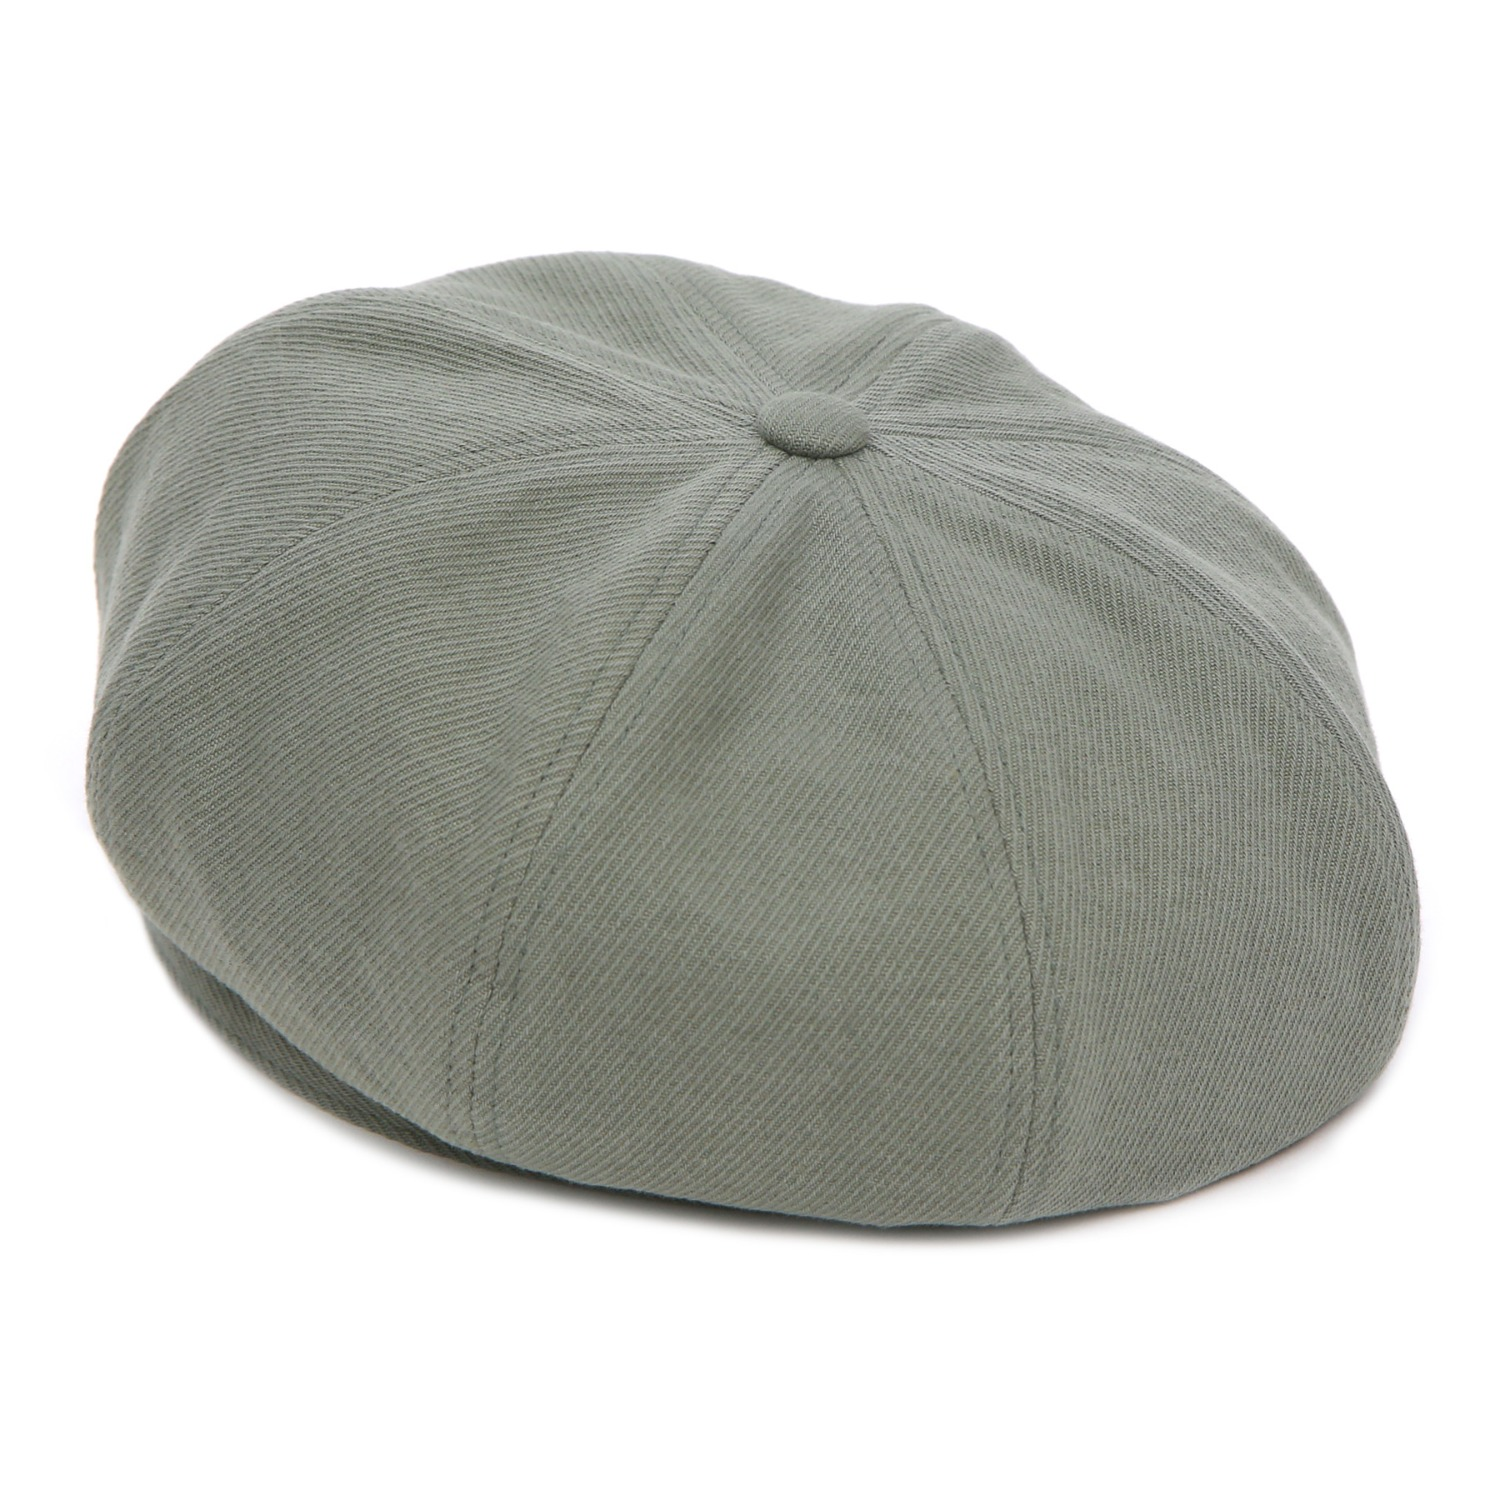 BREAD BERET / BIO H TWILL / D MINT